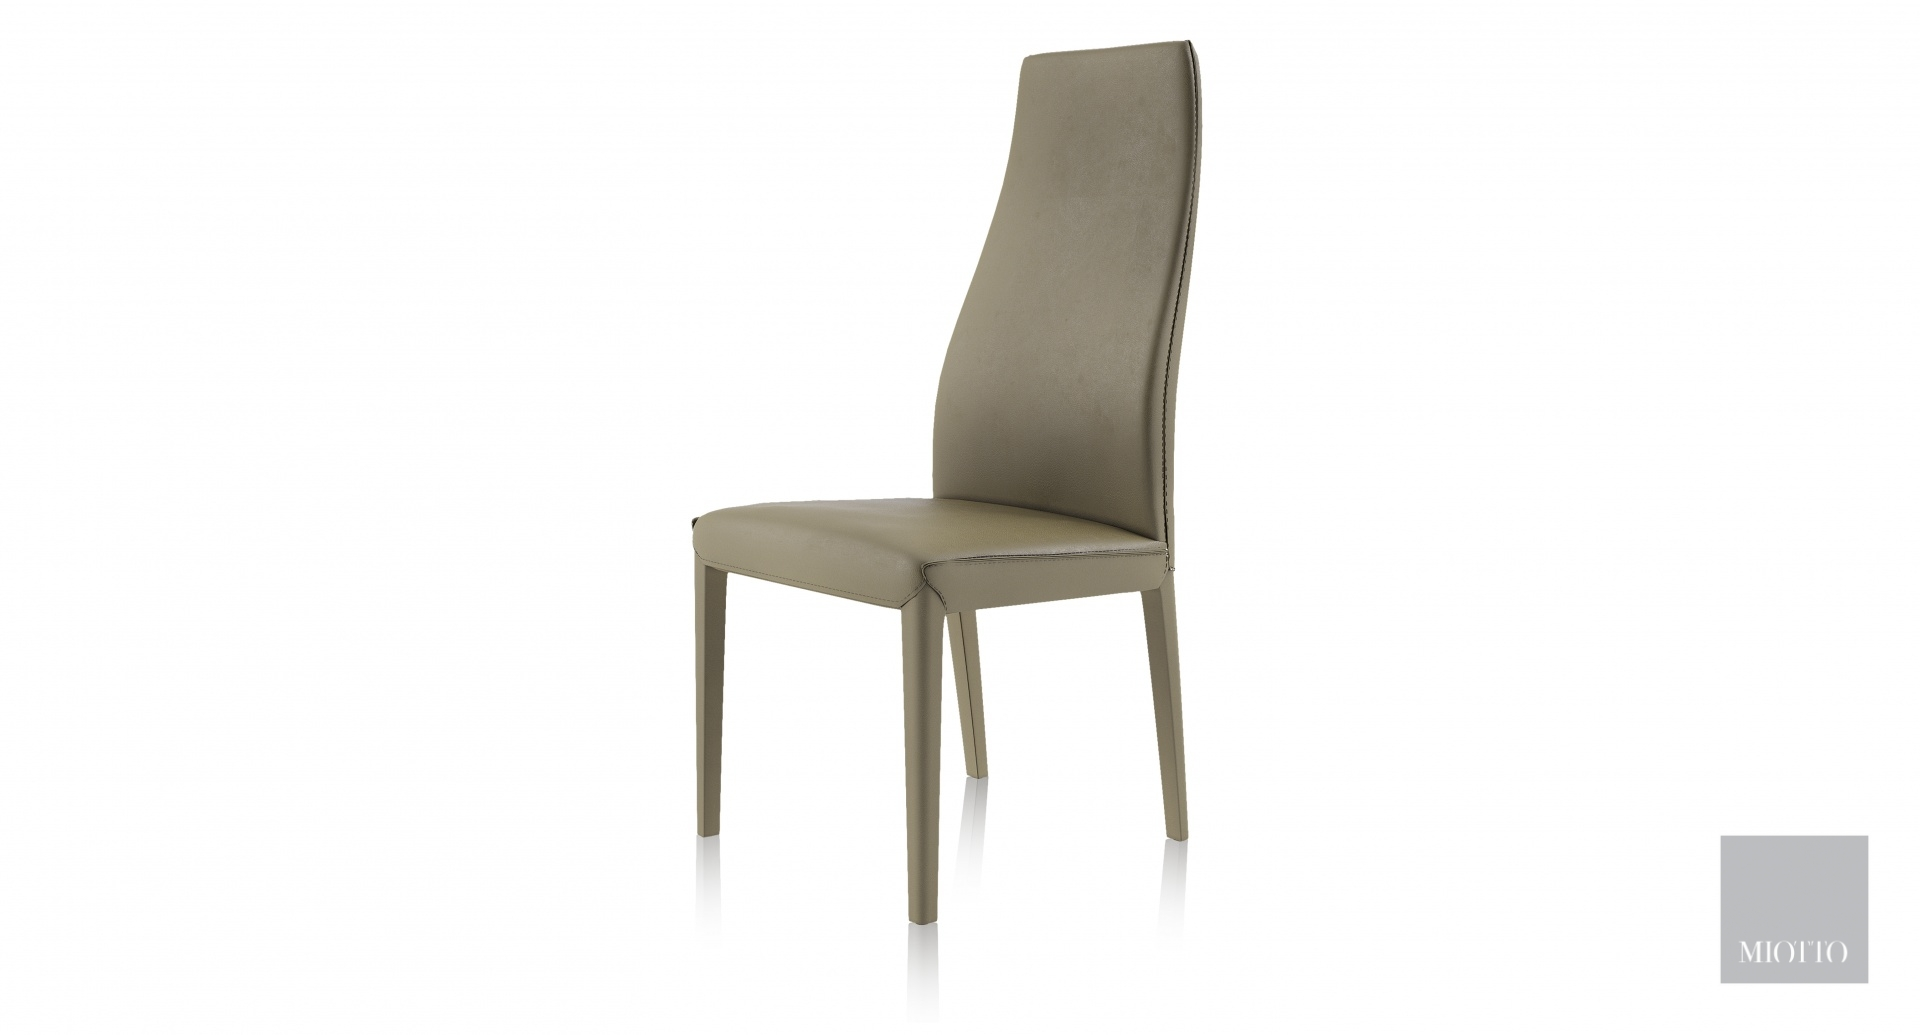 miotto_quinto DC taupe T miotto dining chair furniture